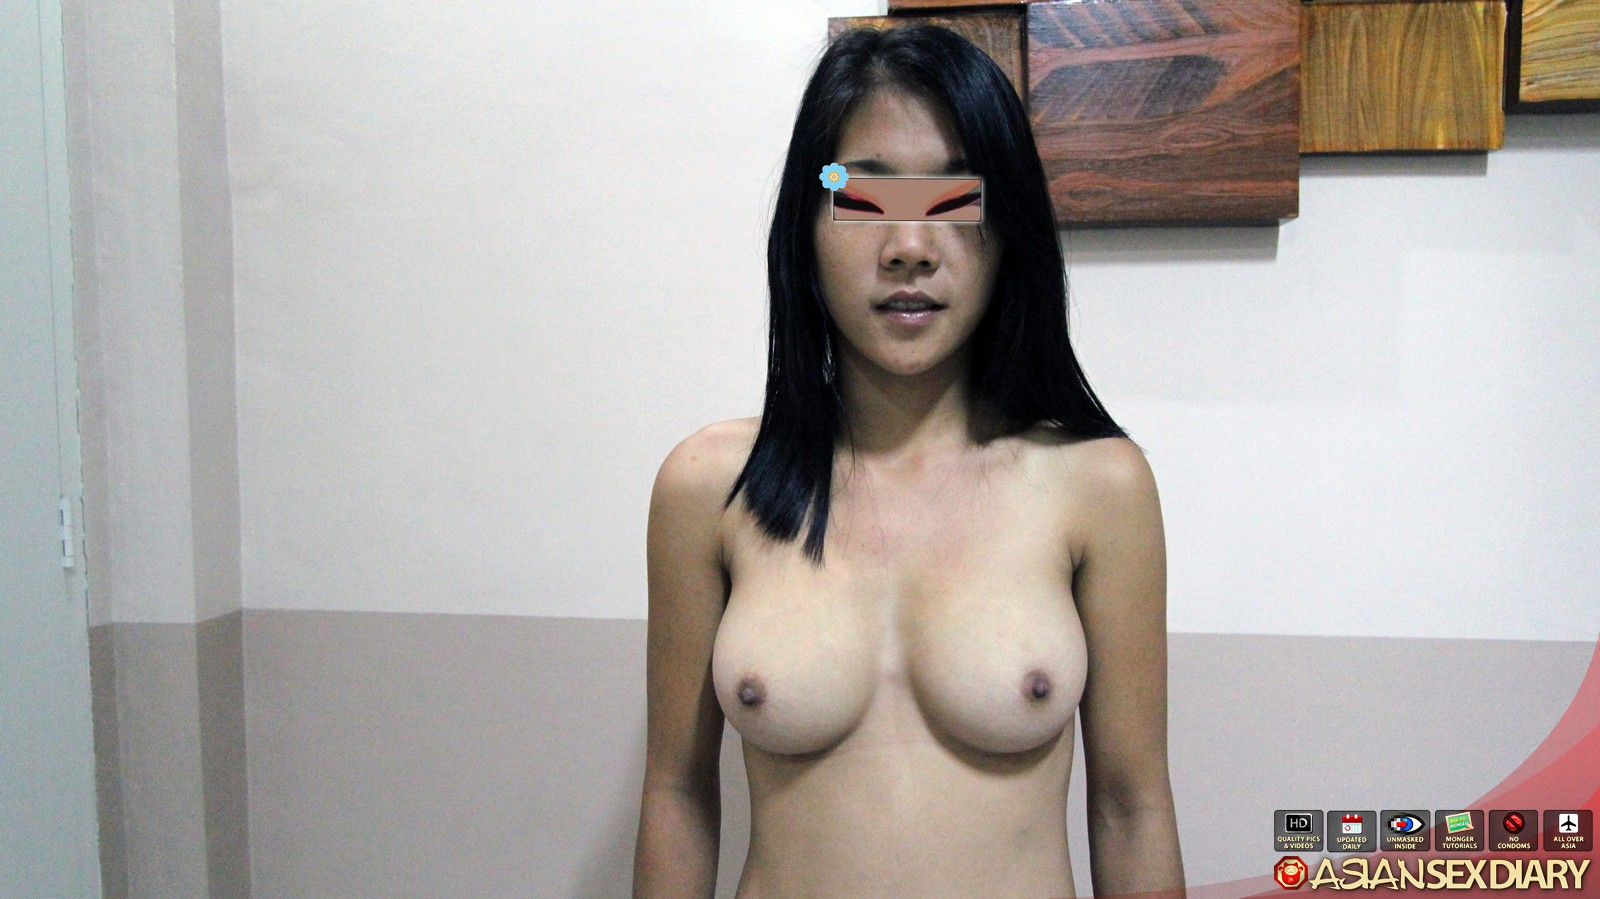 Petite asian girl in lingerie gives you a sloppy blowjob 9